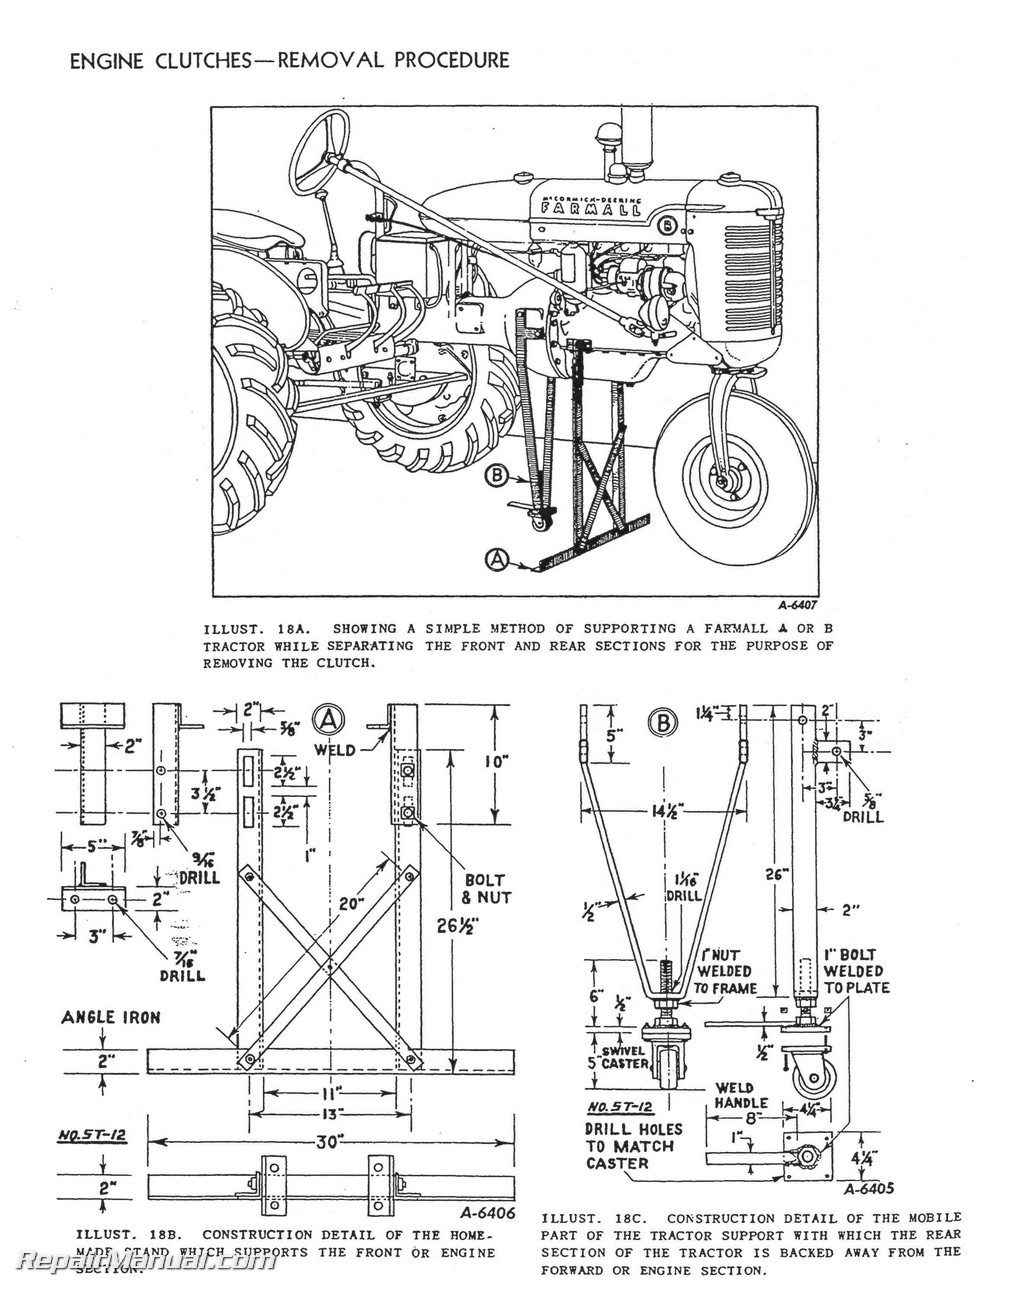 international harvester farmall tractor engine clutch ... wiring diagram for farmall 806 wiring diagram for farmall 460